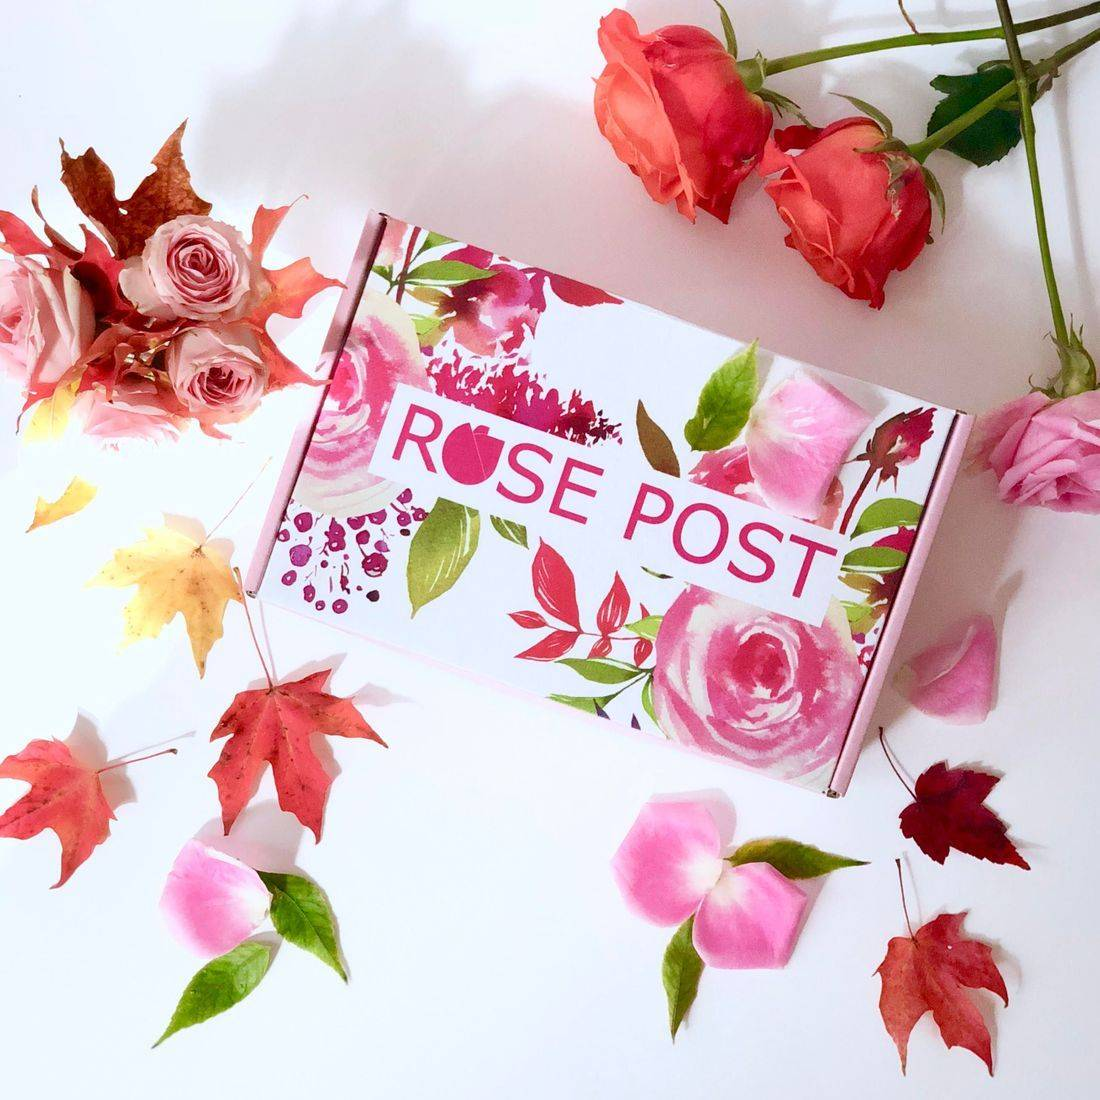 rose skincare, rose oil roller, rose oil, rose absolute, rosepost box, blue flower, essential oils, aromatherapy, self-care products